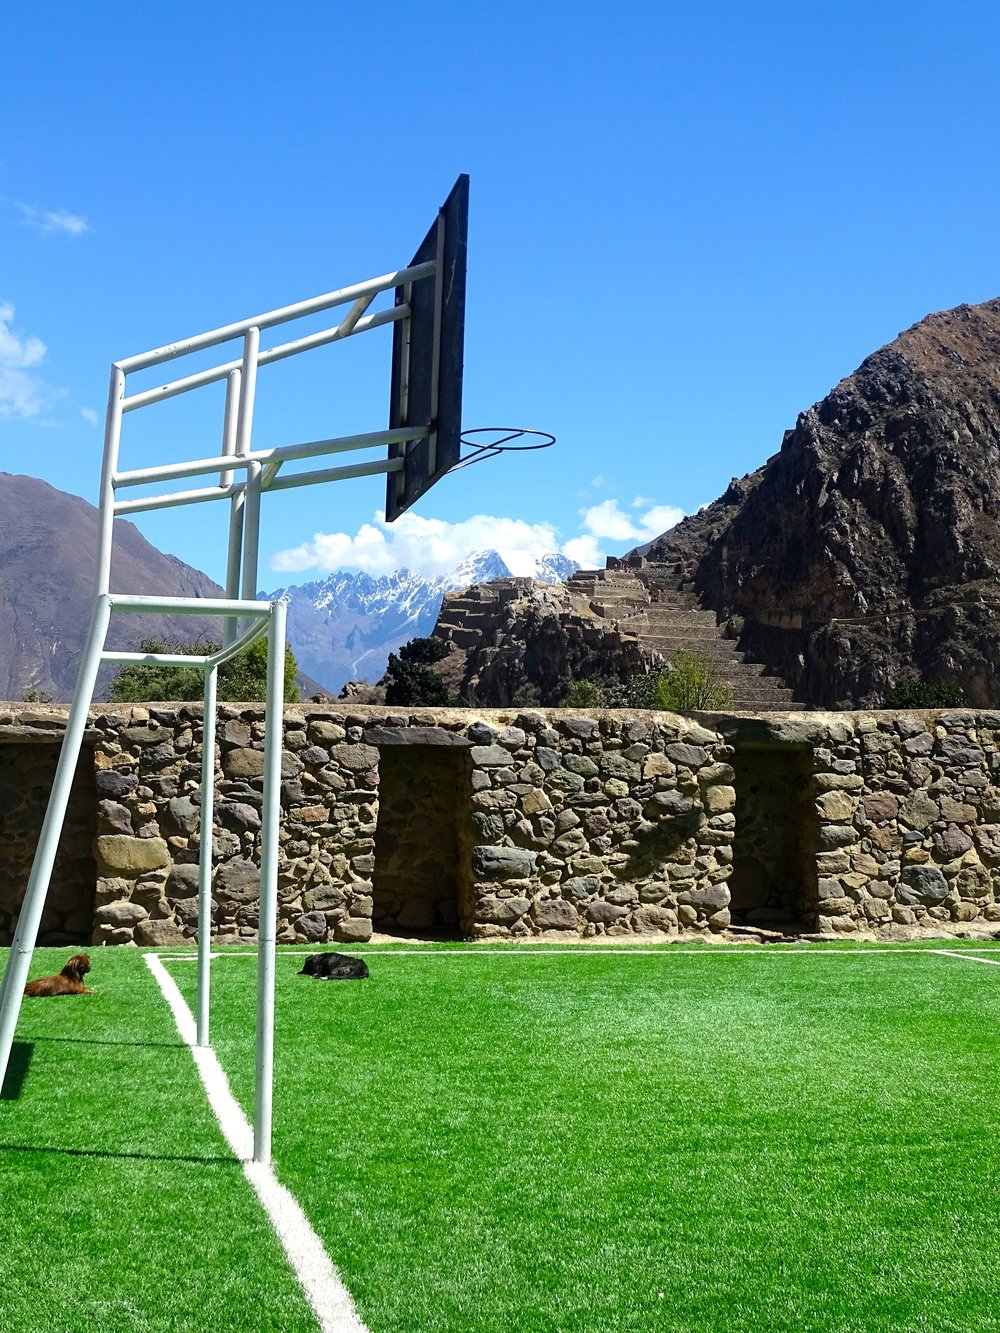 Creative combination of a basketball hoop and a football goal.  Not sure how well the ball bounces on the fake turf.